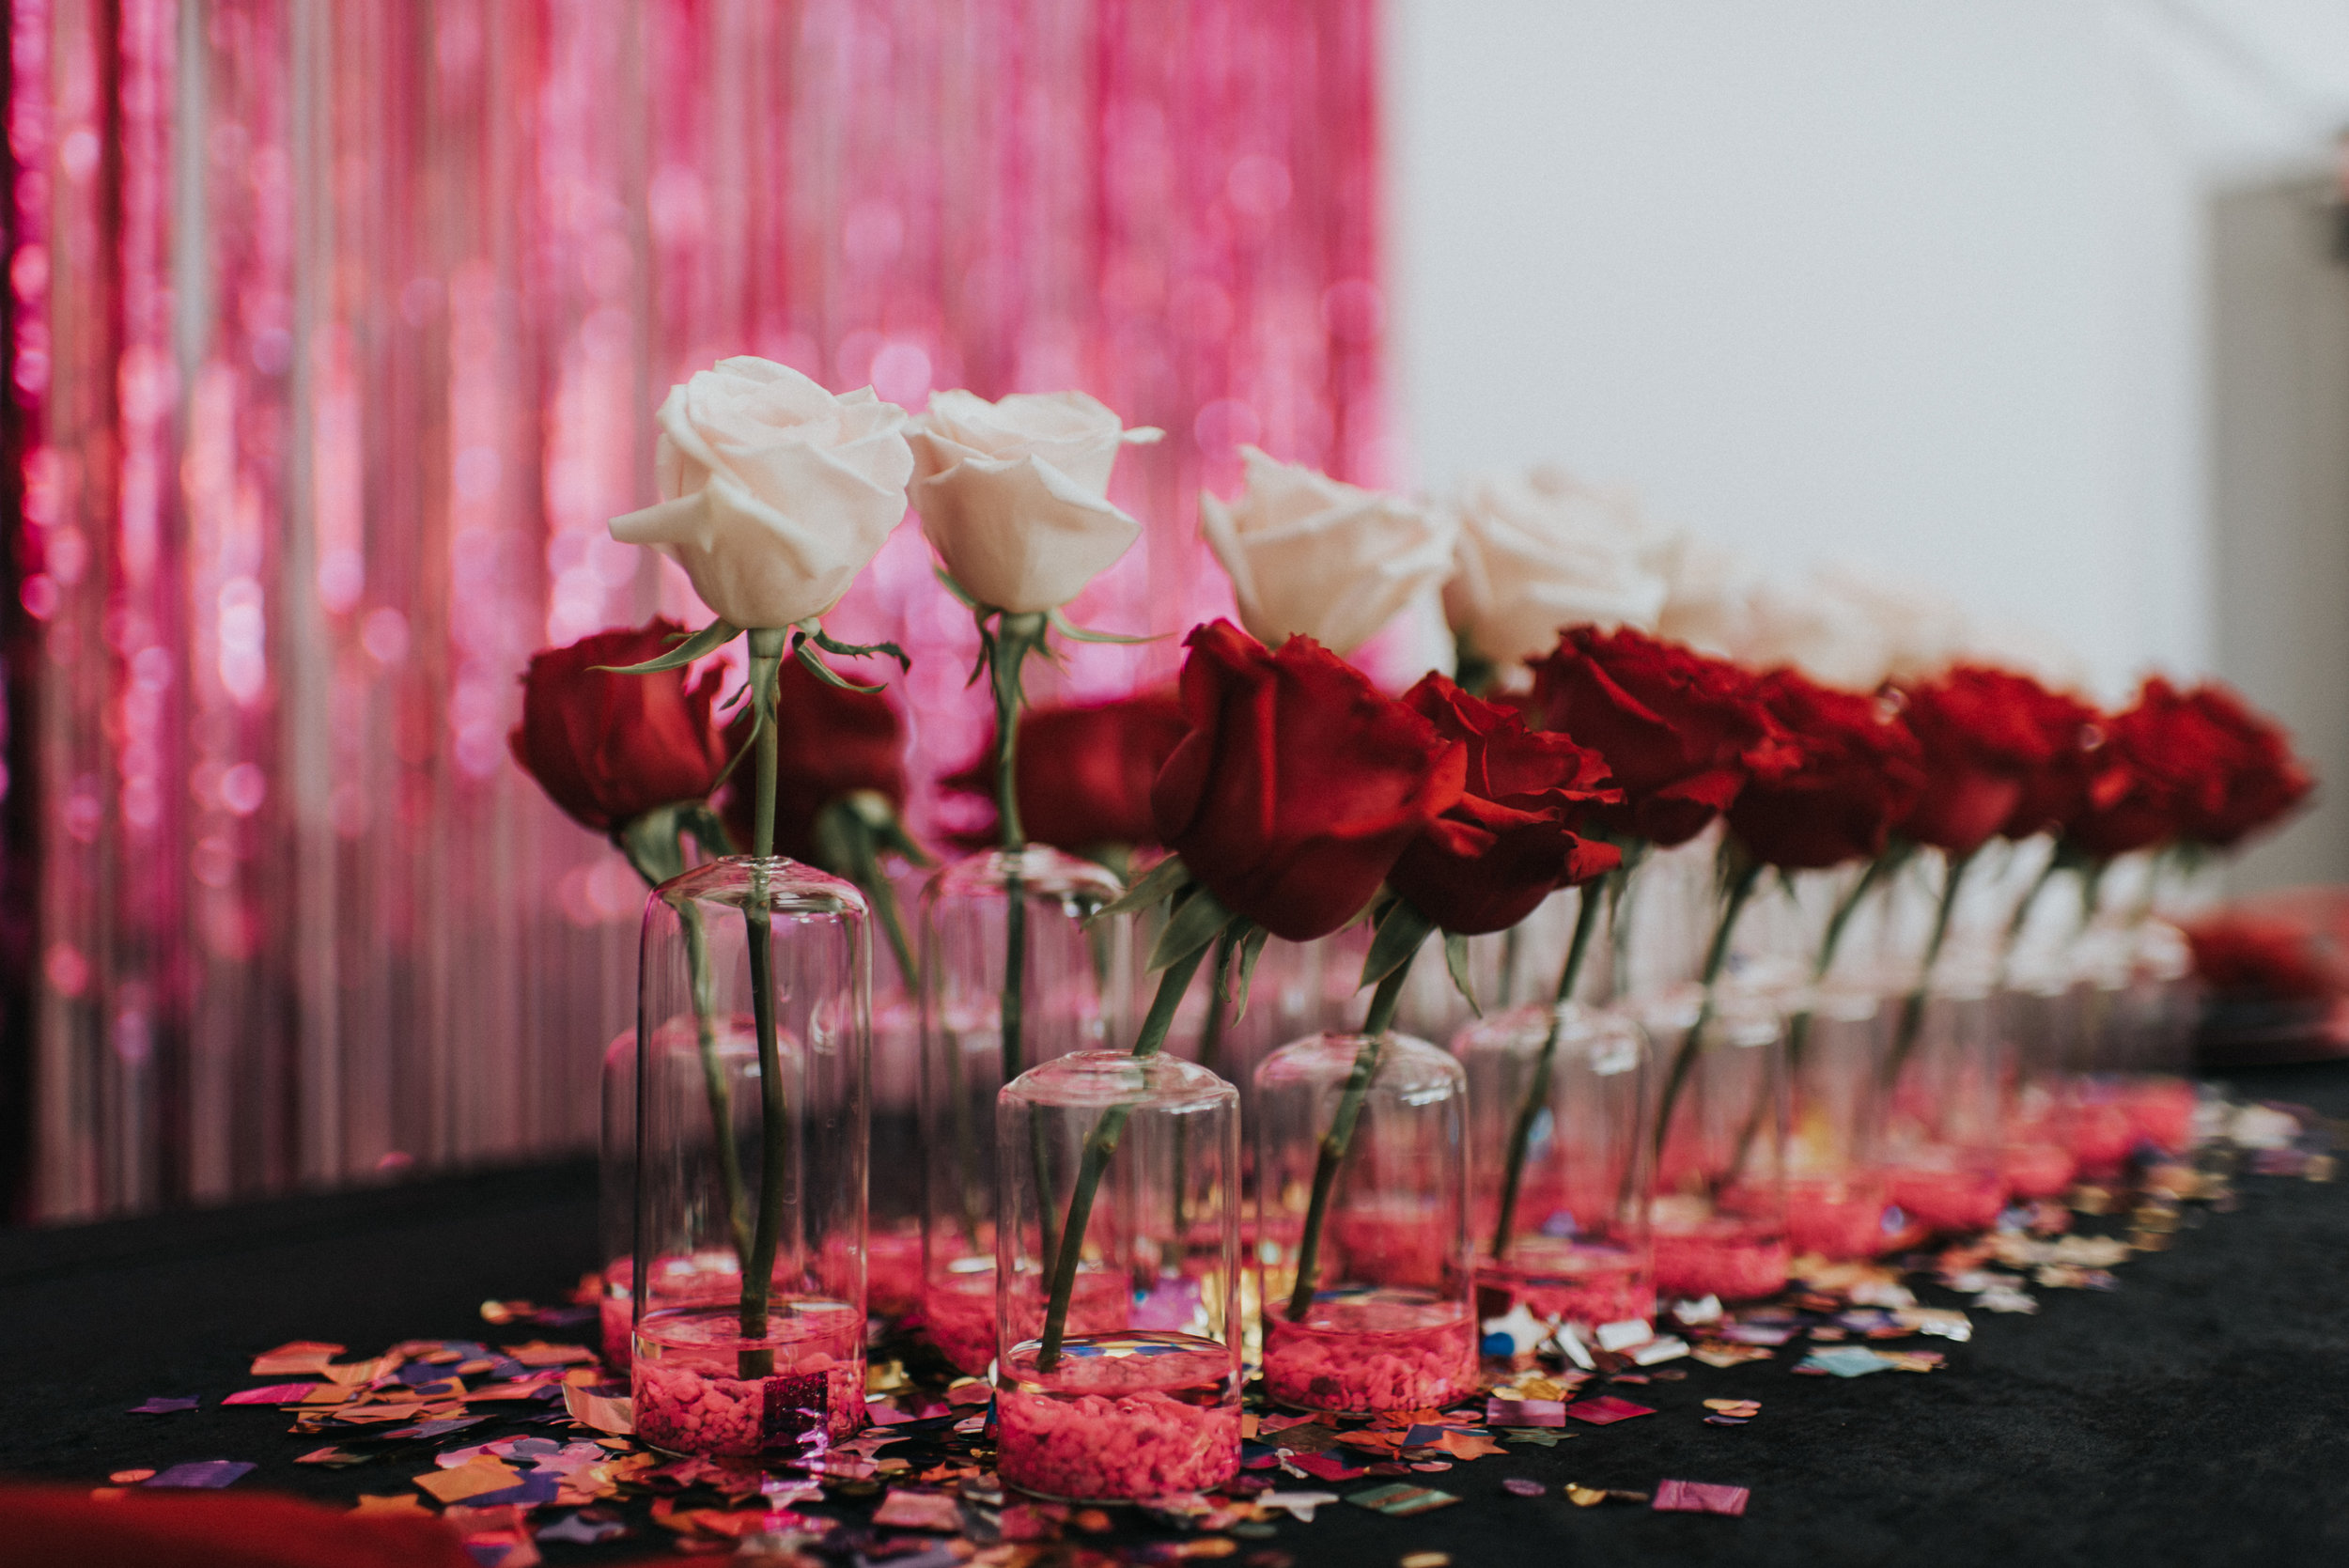 Millennial Pink Inspired Wedding - Rose Bud Vase Centerpiece